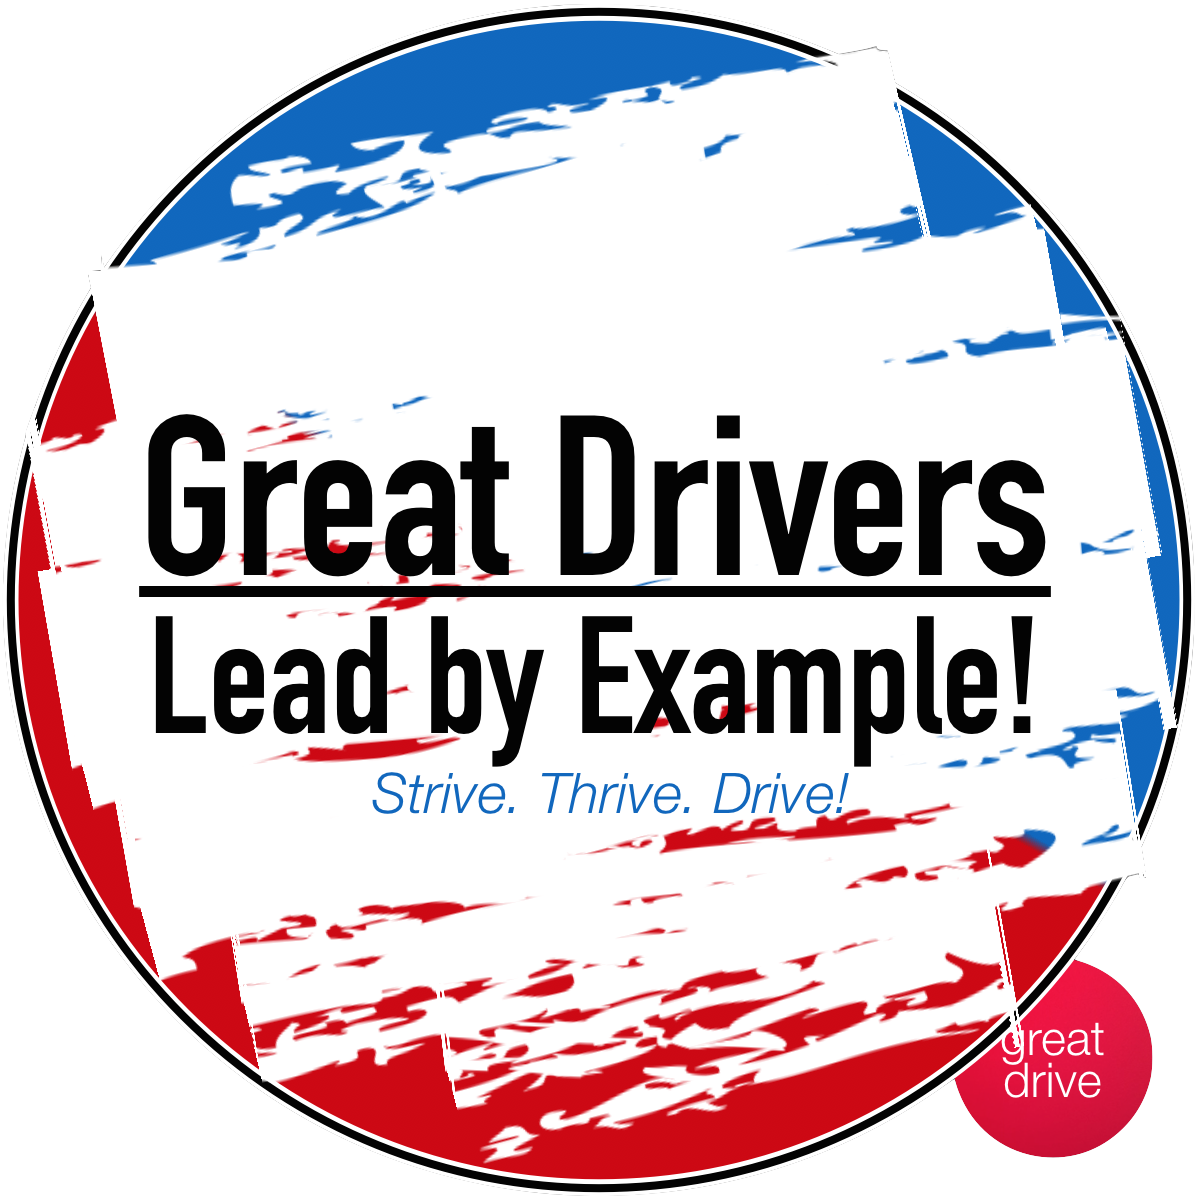 Great Drivers Lead by Example!